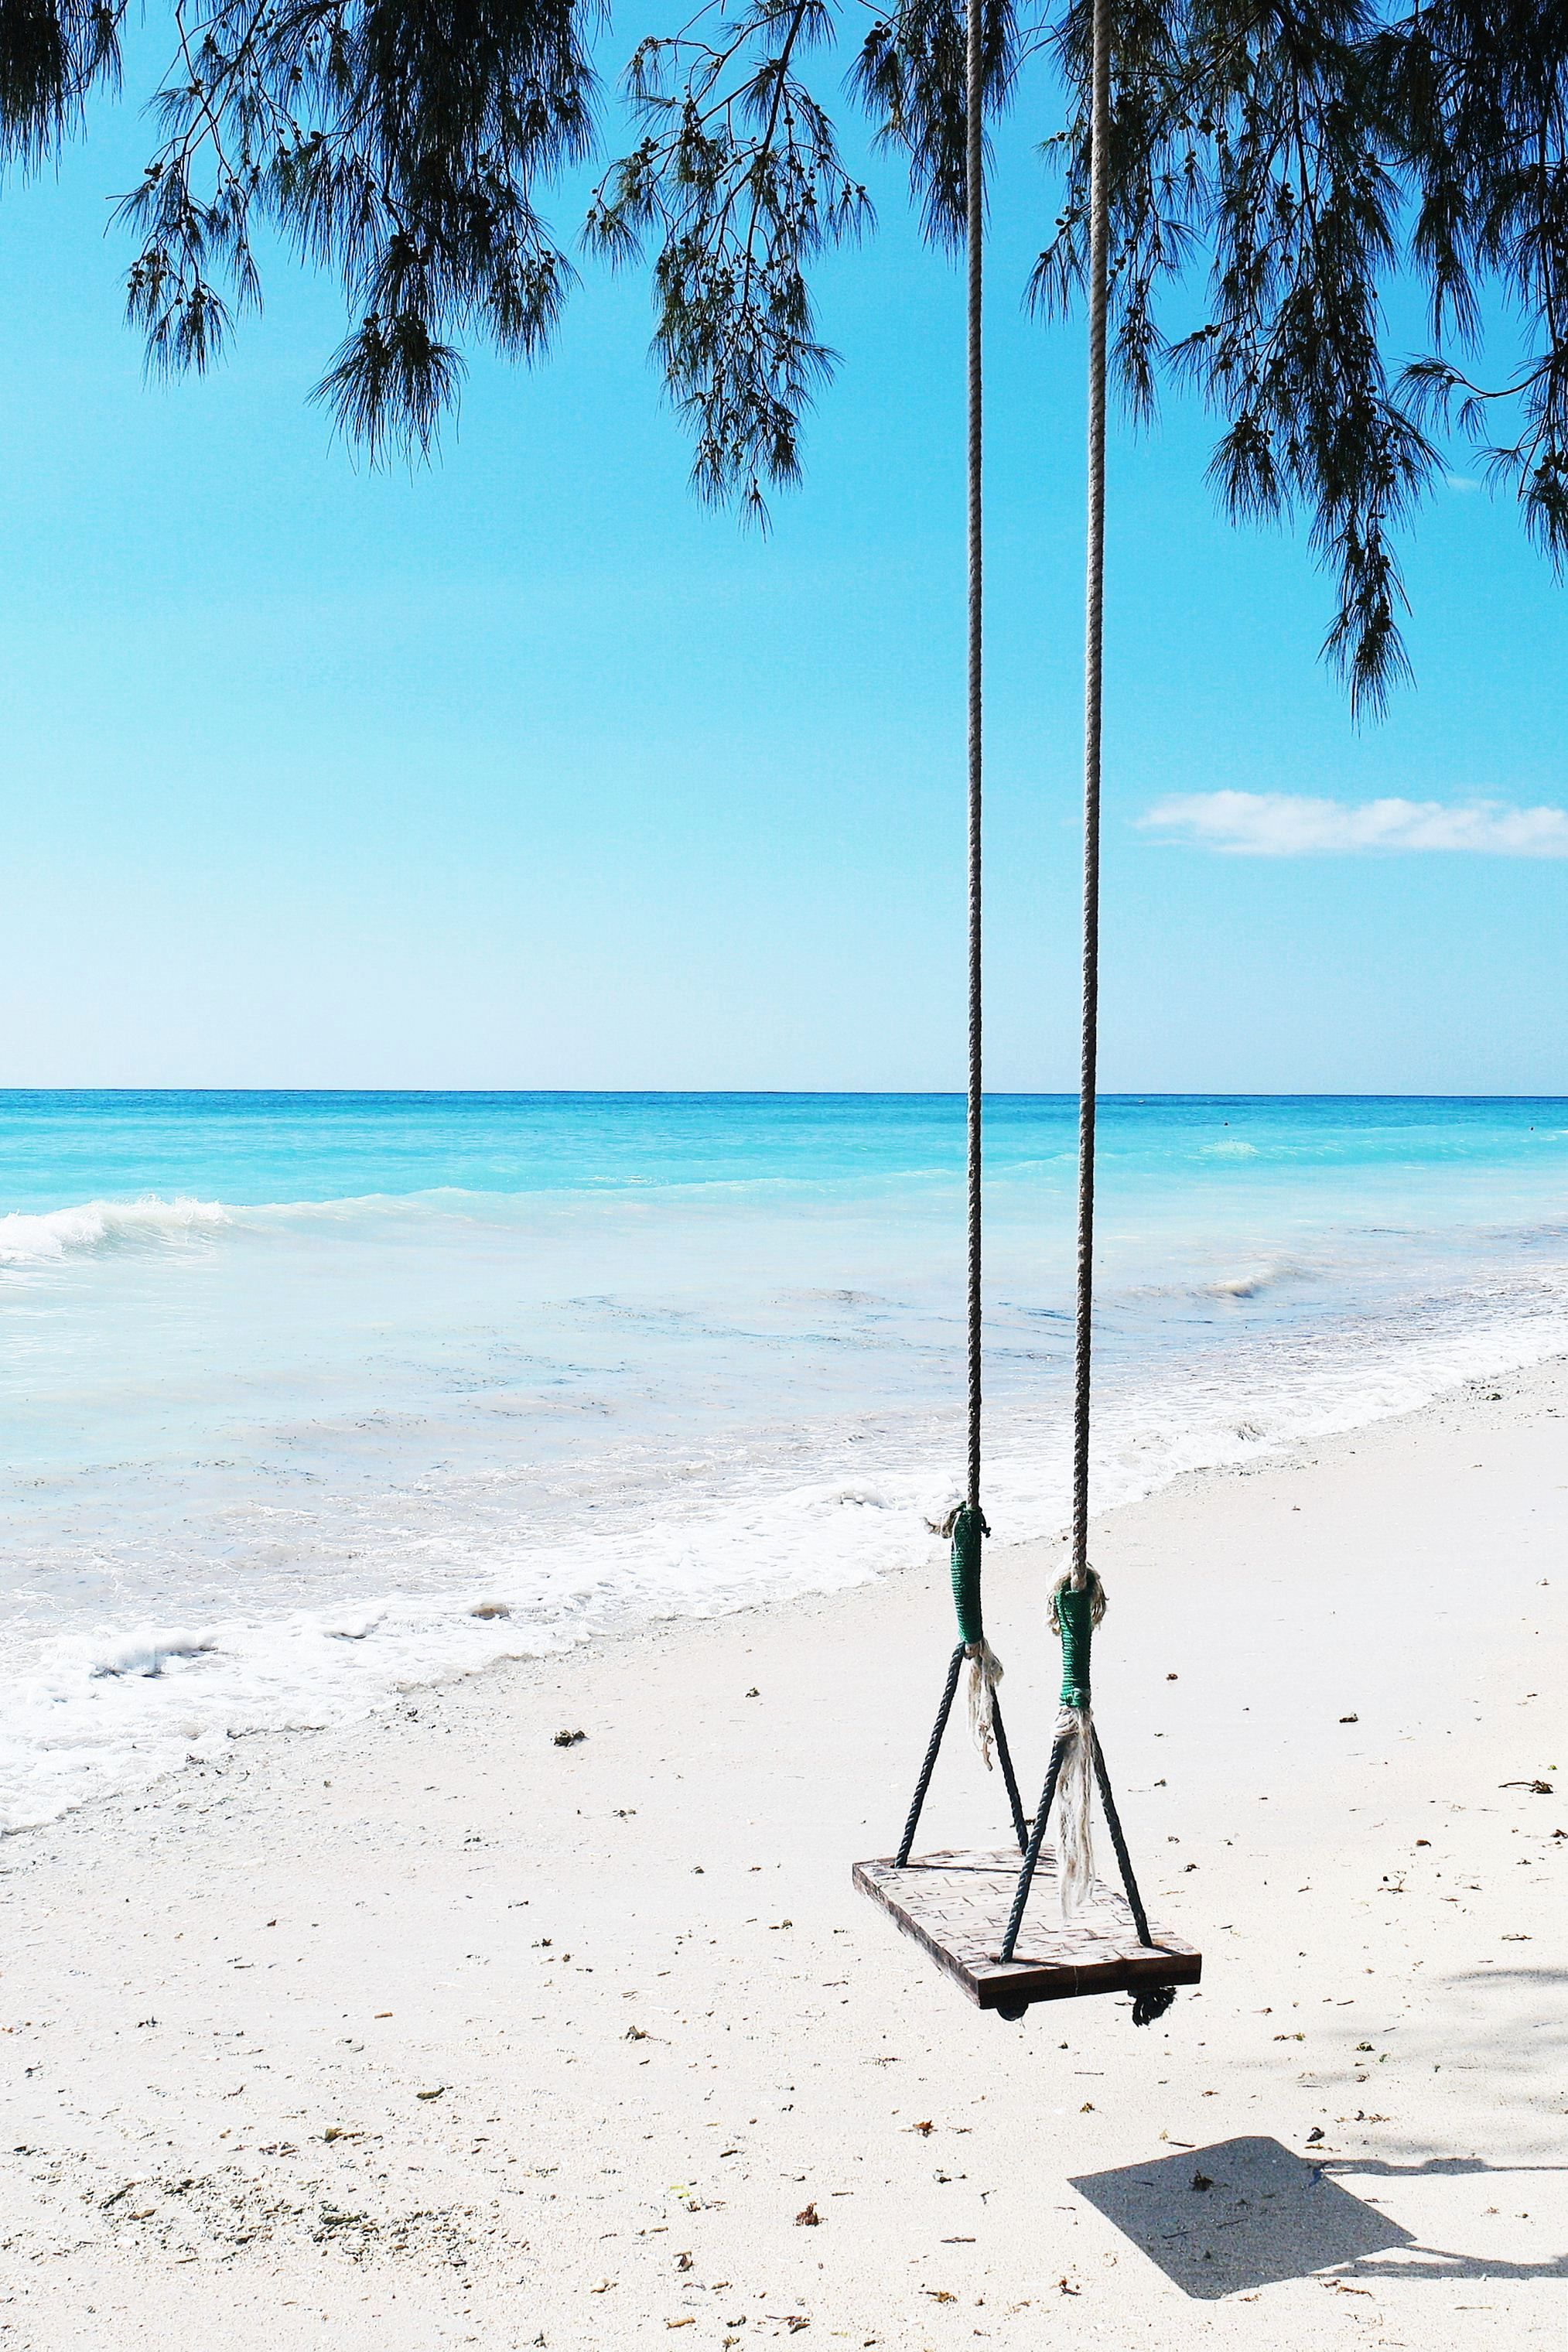 Looks like the swing is waiting for you.  So put on your swim suit and grab that island cocktail and swing away into Paradise.